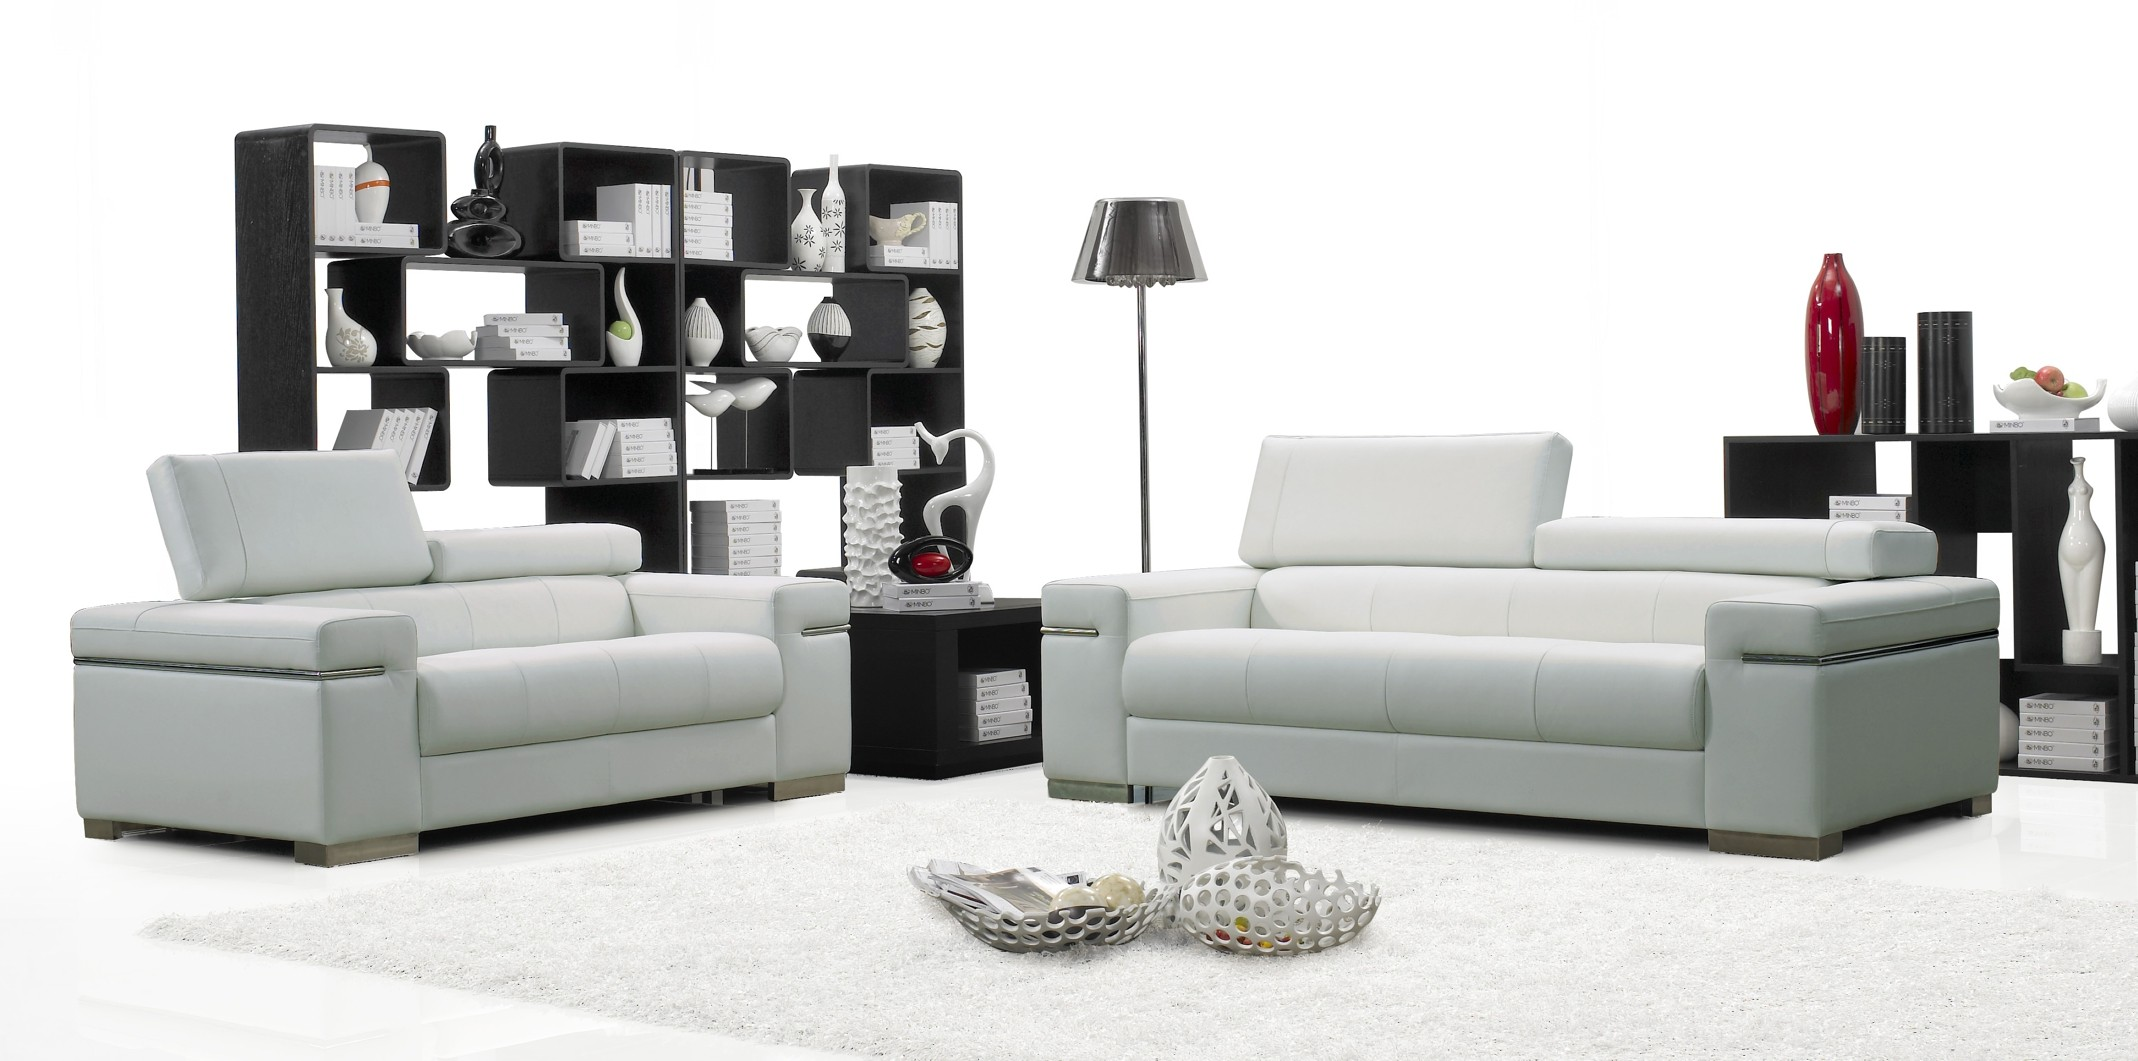 modern furniture style. Modern White Sofas With Headrest Area Rug Large Black Shelving Unit For Books And Decorative Furniture Style